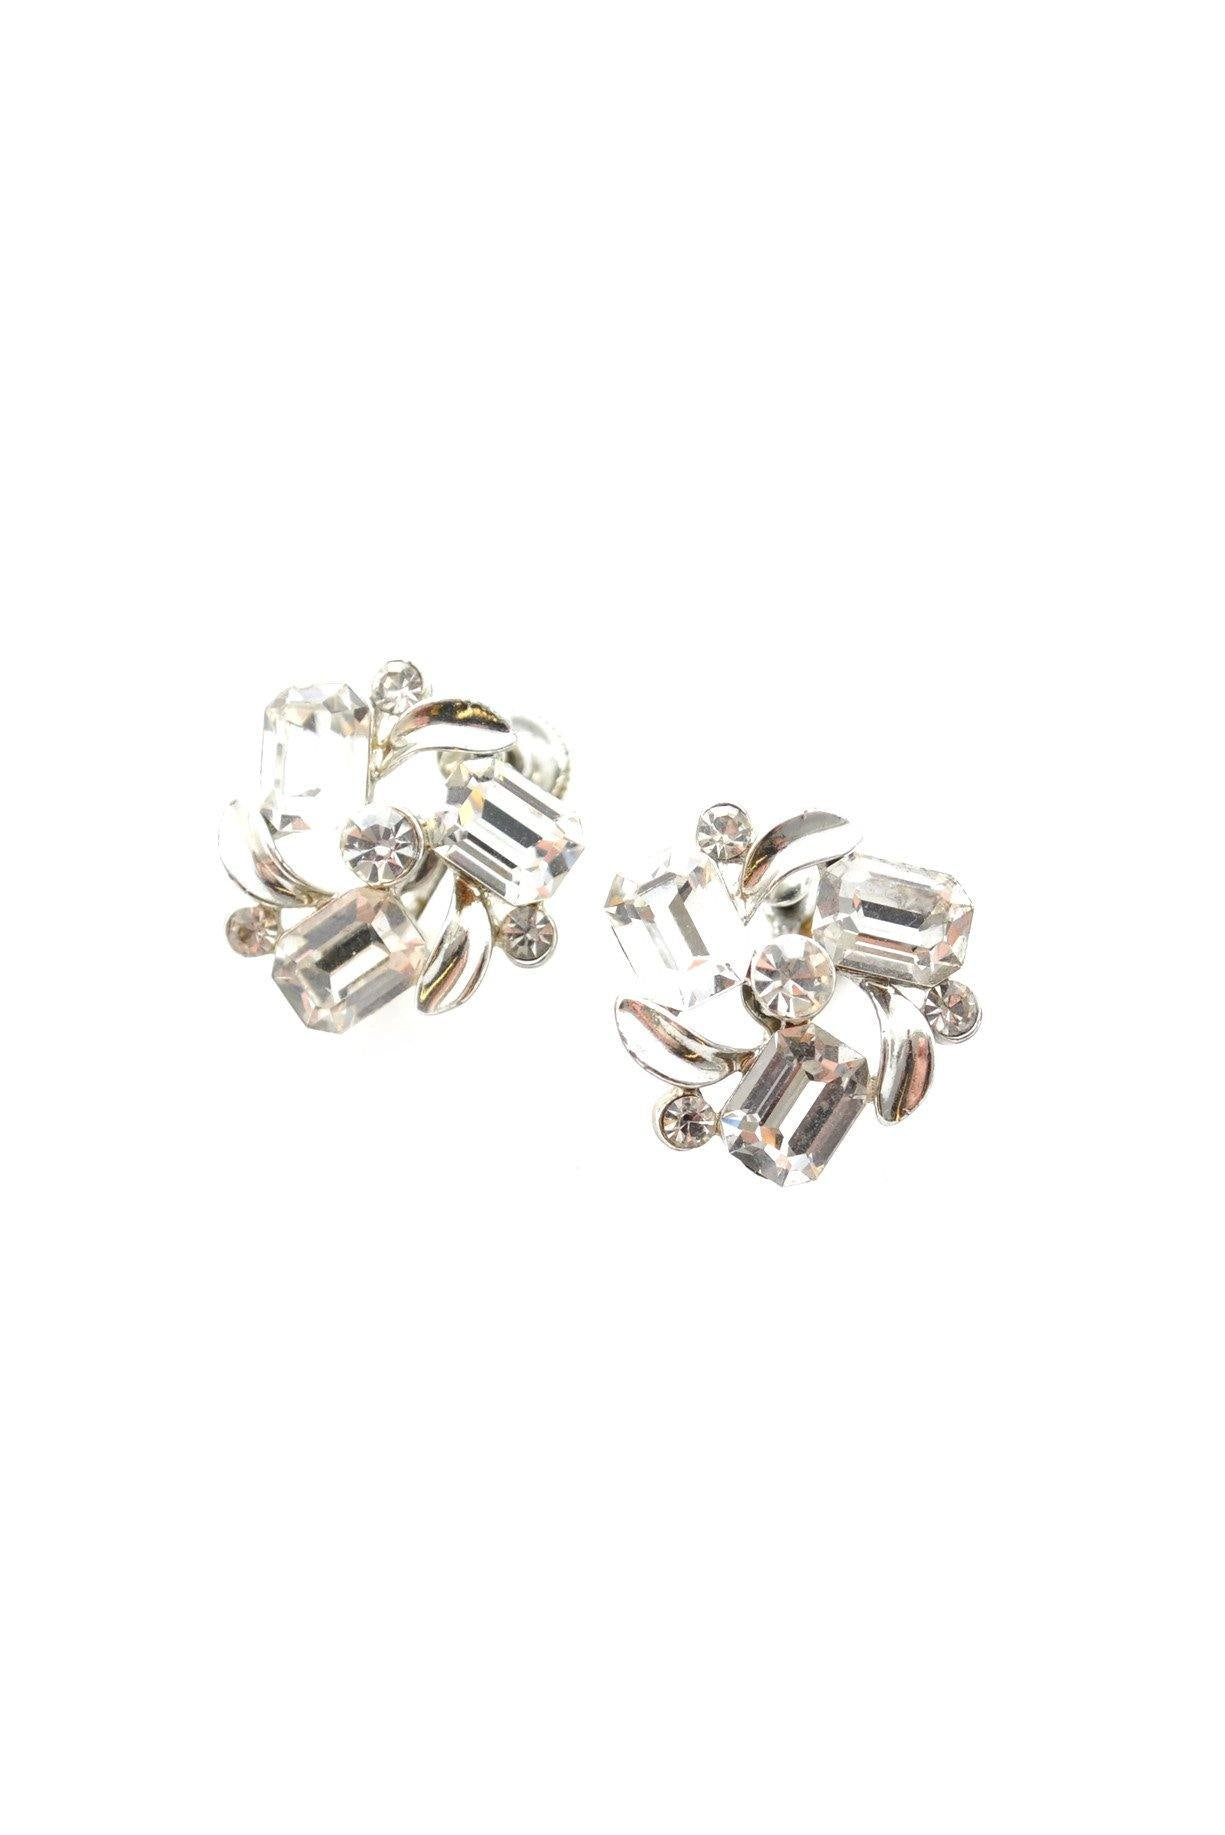 50s__Lisner__Rhinestone Clip-On Earrings